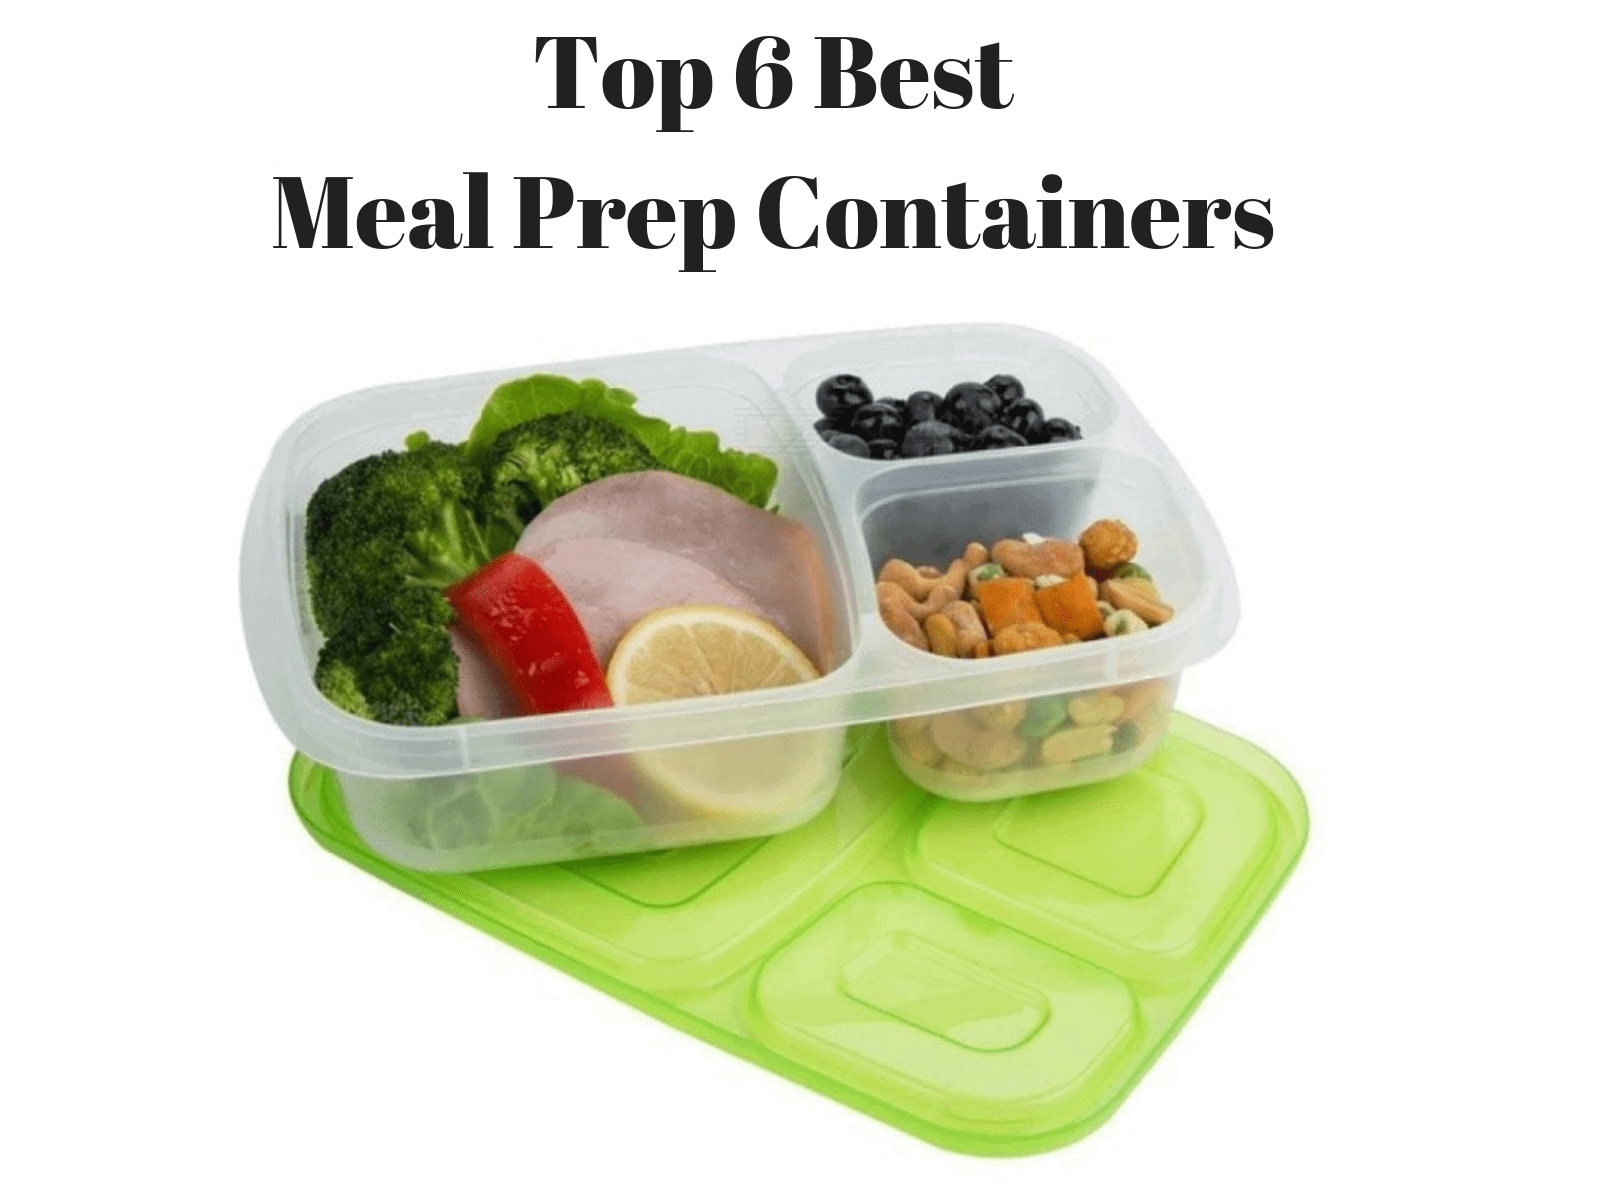 The Best Meal Prep Containers For Dieting